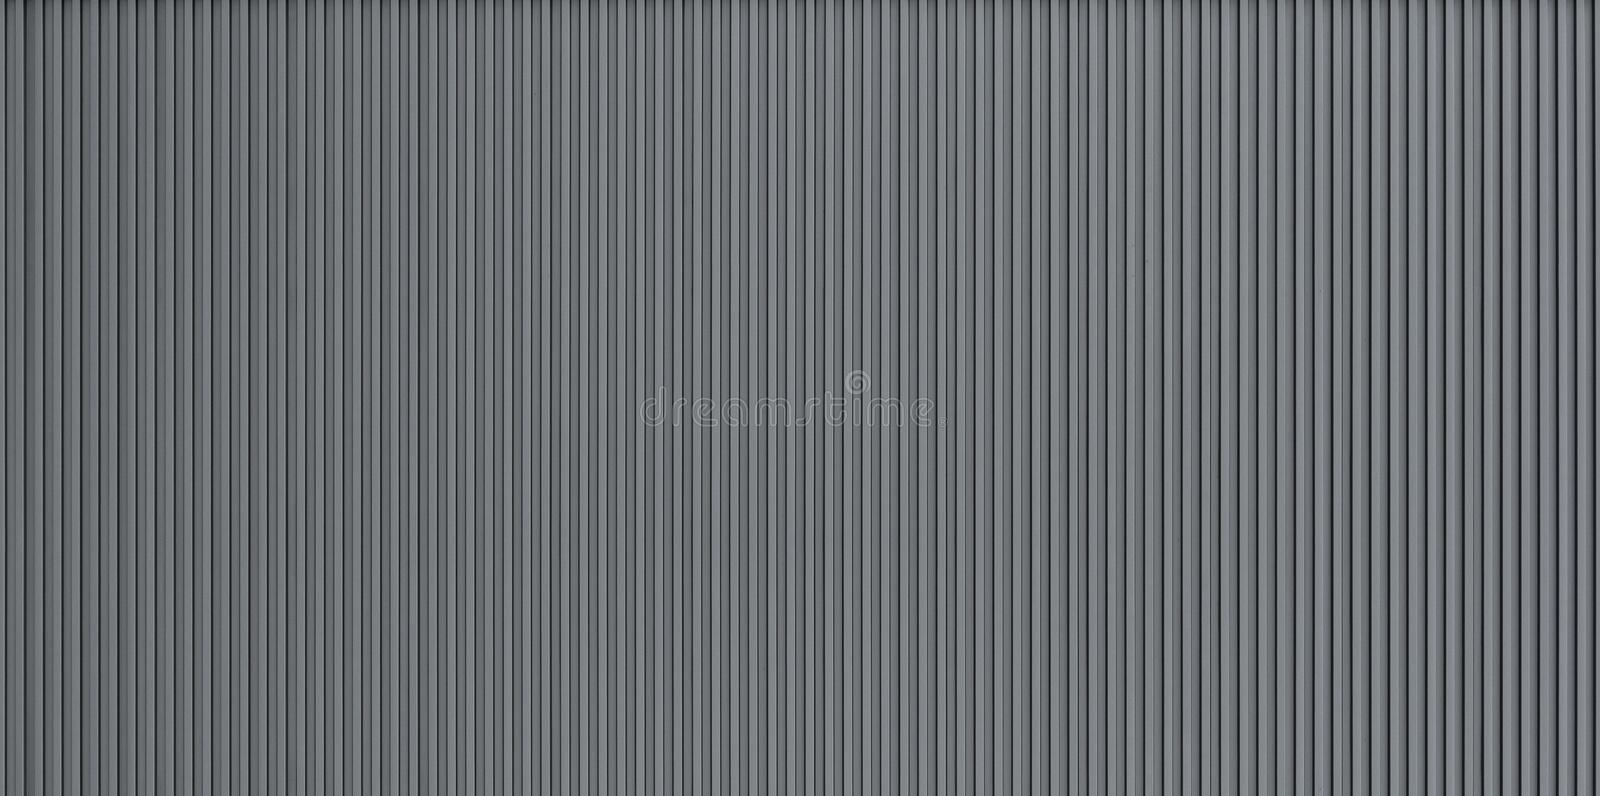 Corrugated metal wall texture stock photography